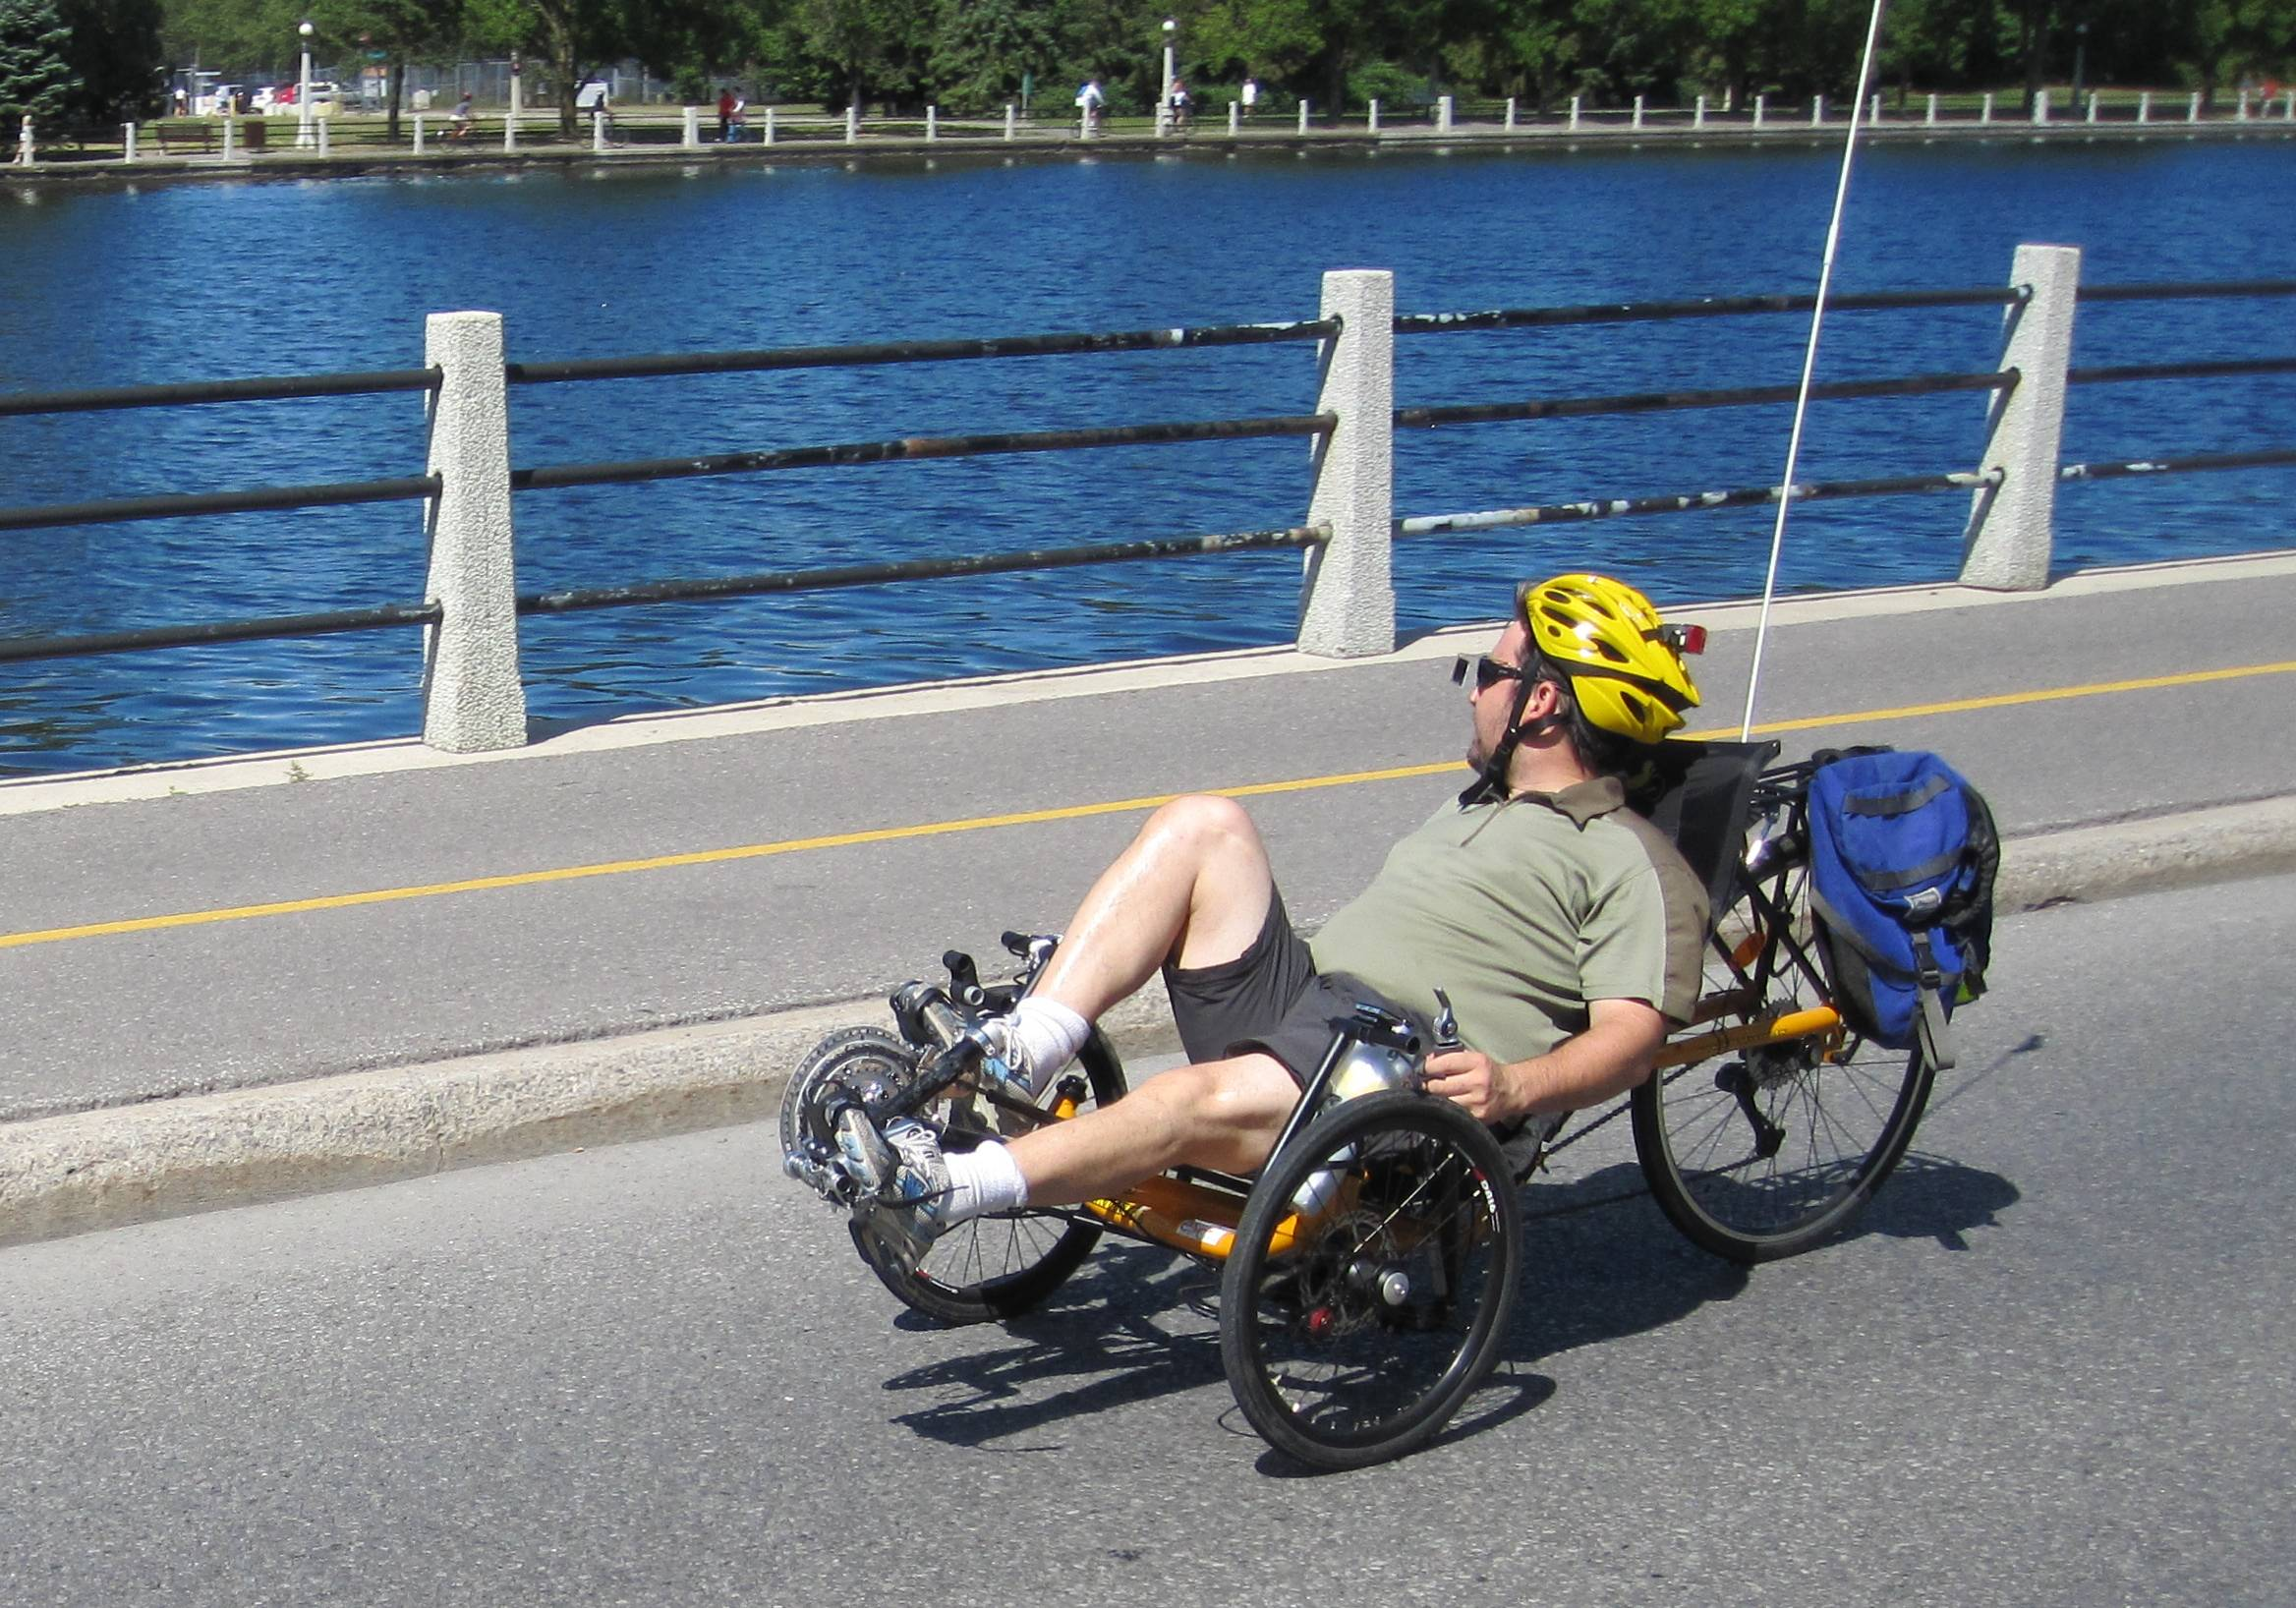 2011-07-24-ottawa-bicycle-culture-6